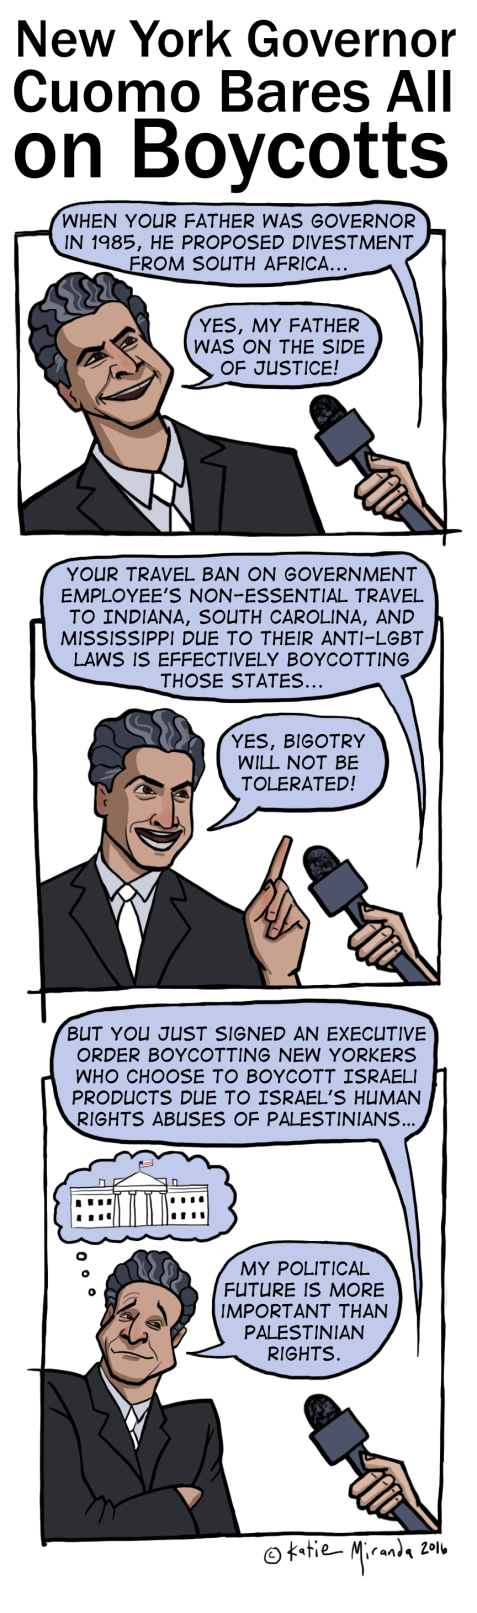        Cuomo's shifting standards on boycott, a cartoon by Katie Miranda Cuomo's shifting standards on boycott, a cartoon by Katie Miranda